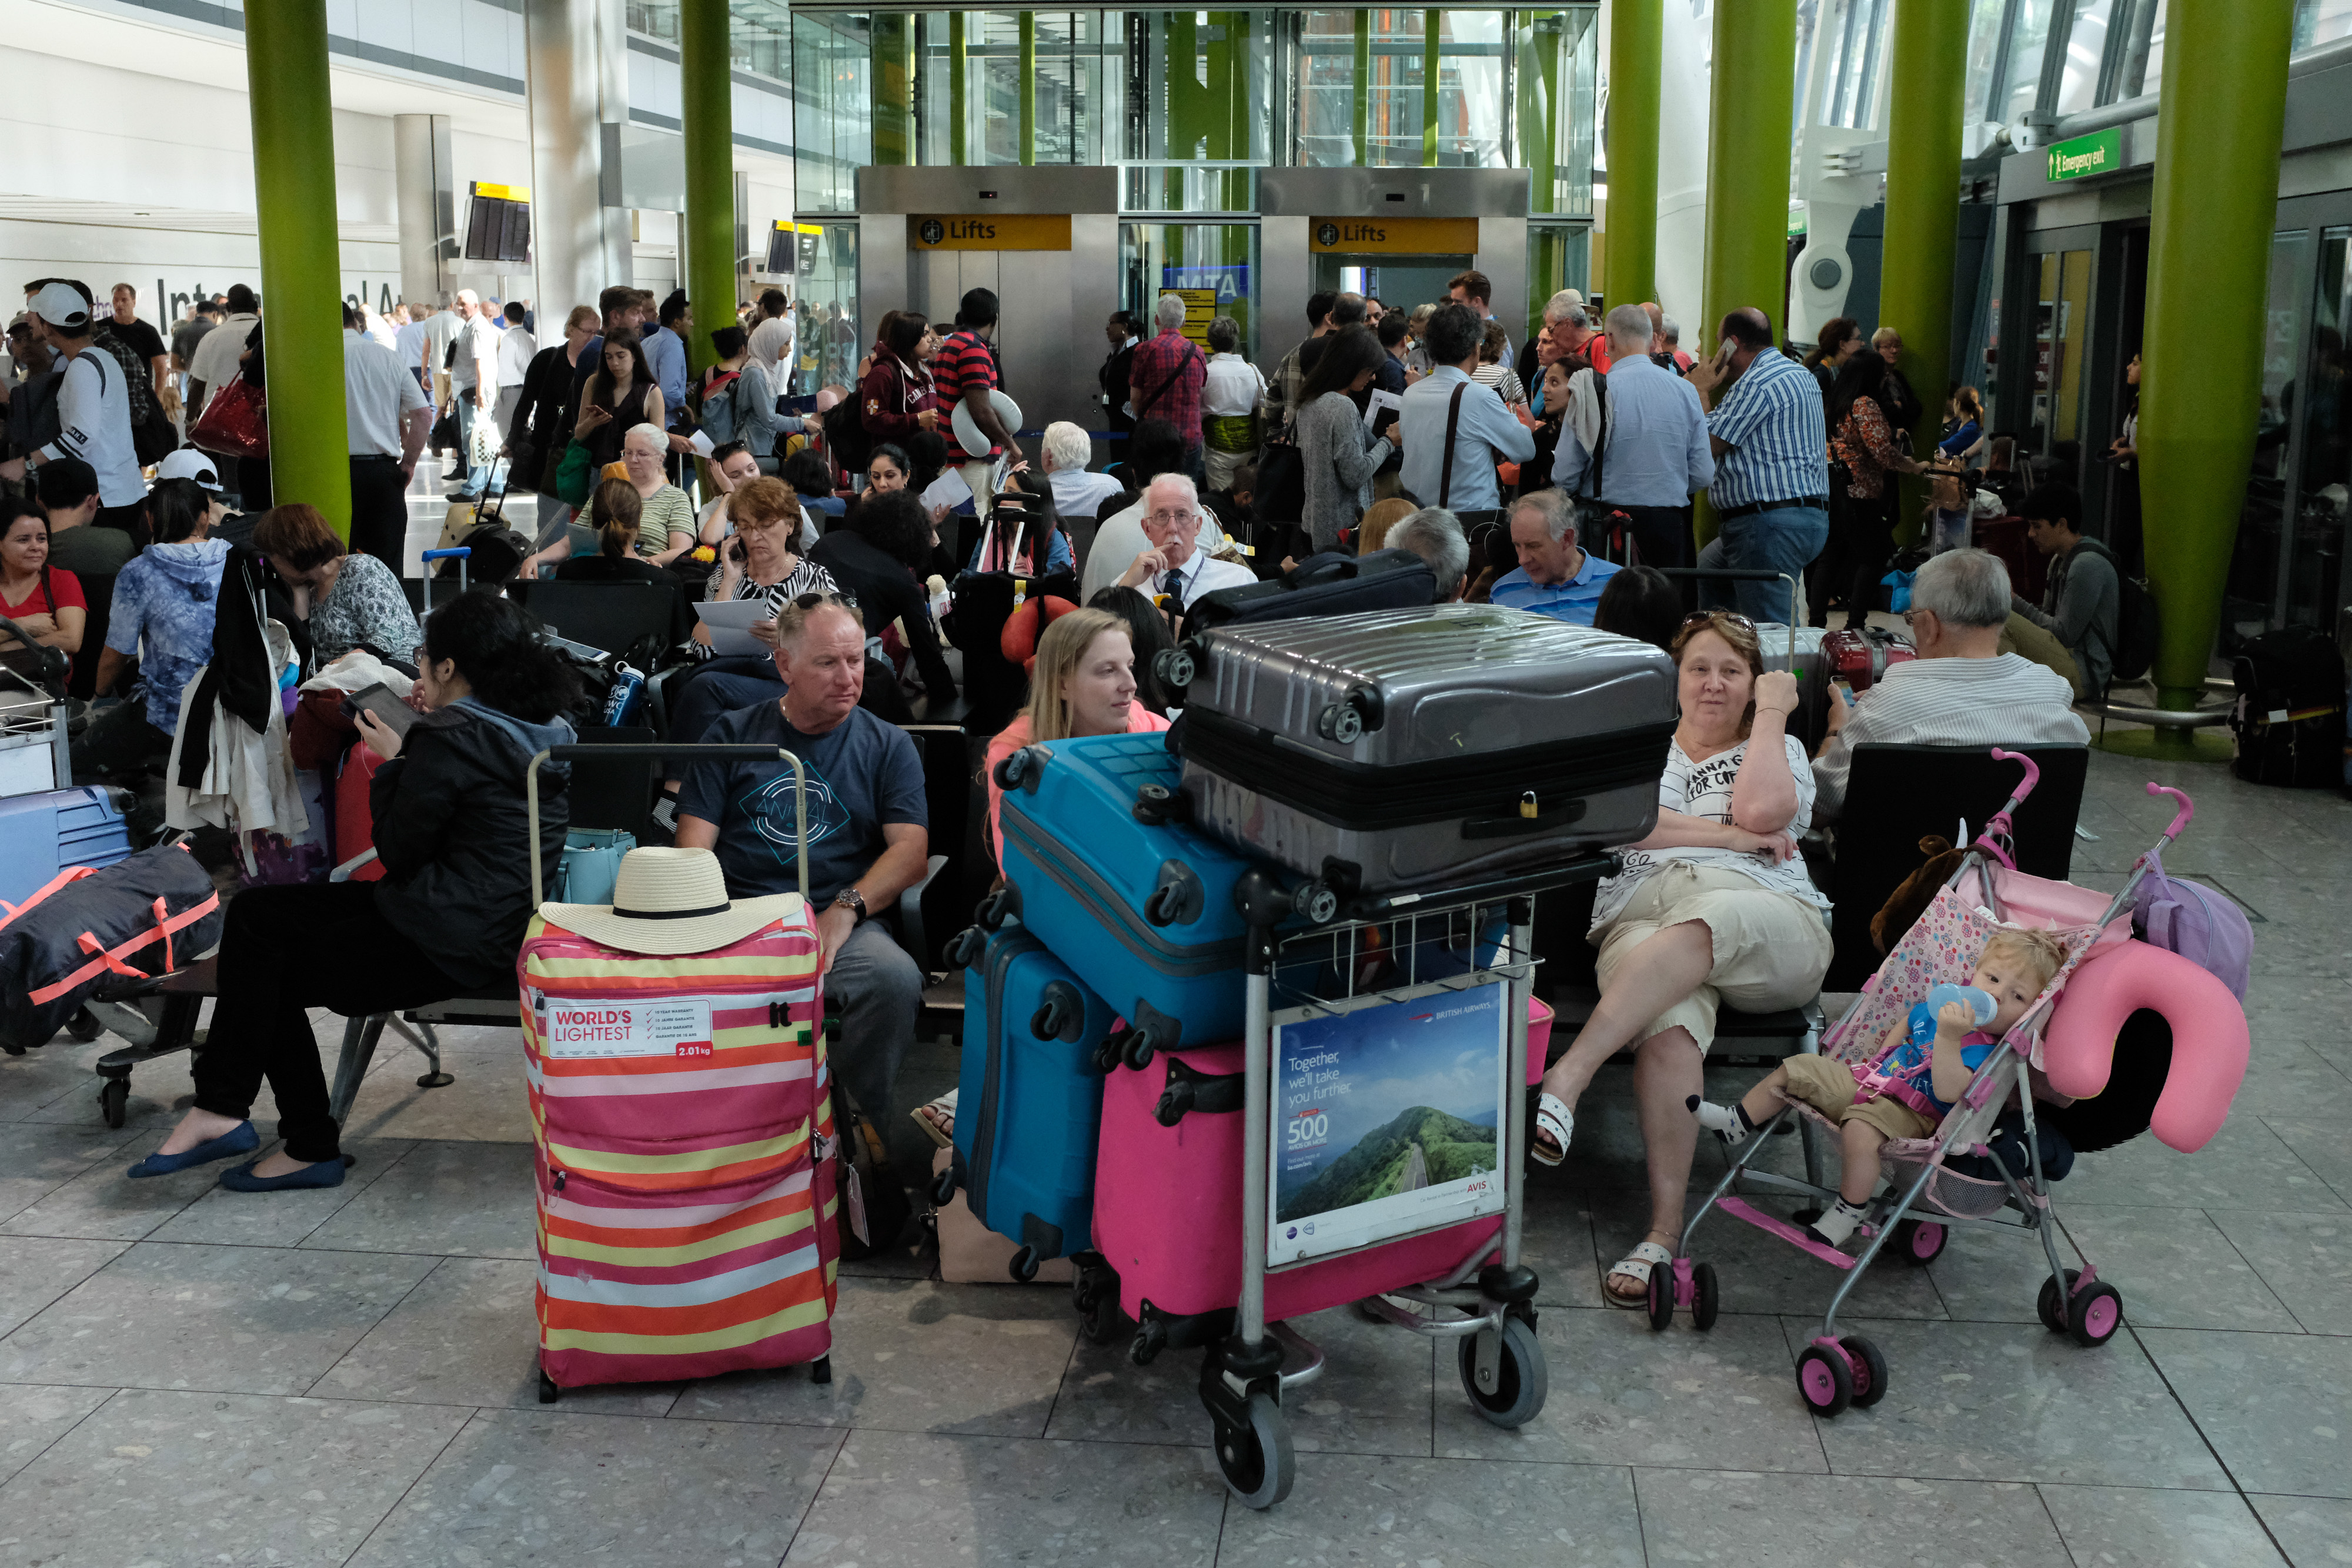 Travelers stranded at Heathrow Airport's Terminal 5 after British Airways canceled flights due to an IT systems failure.